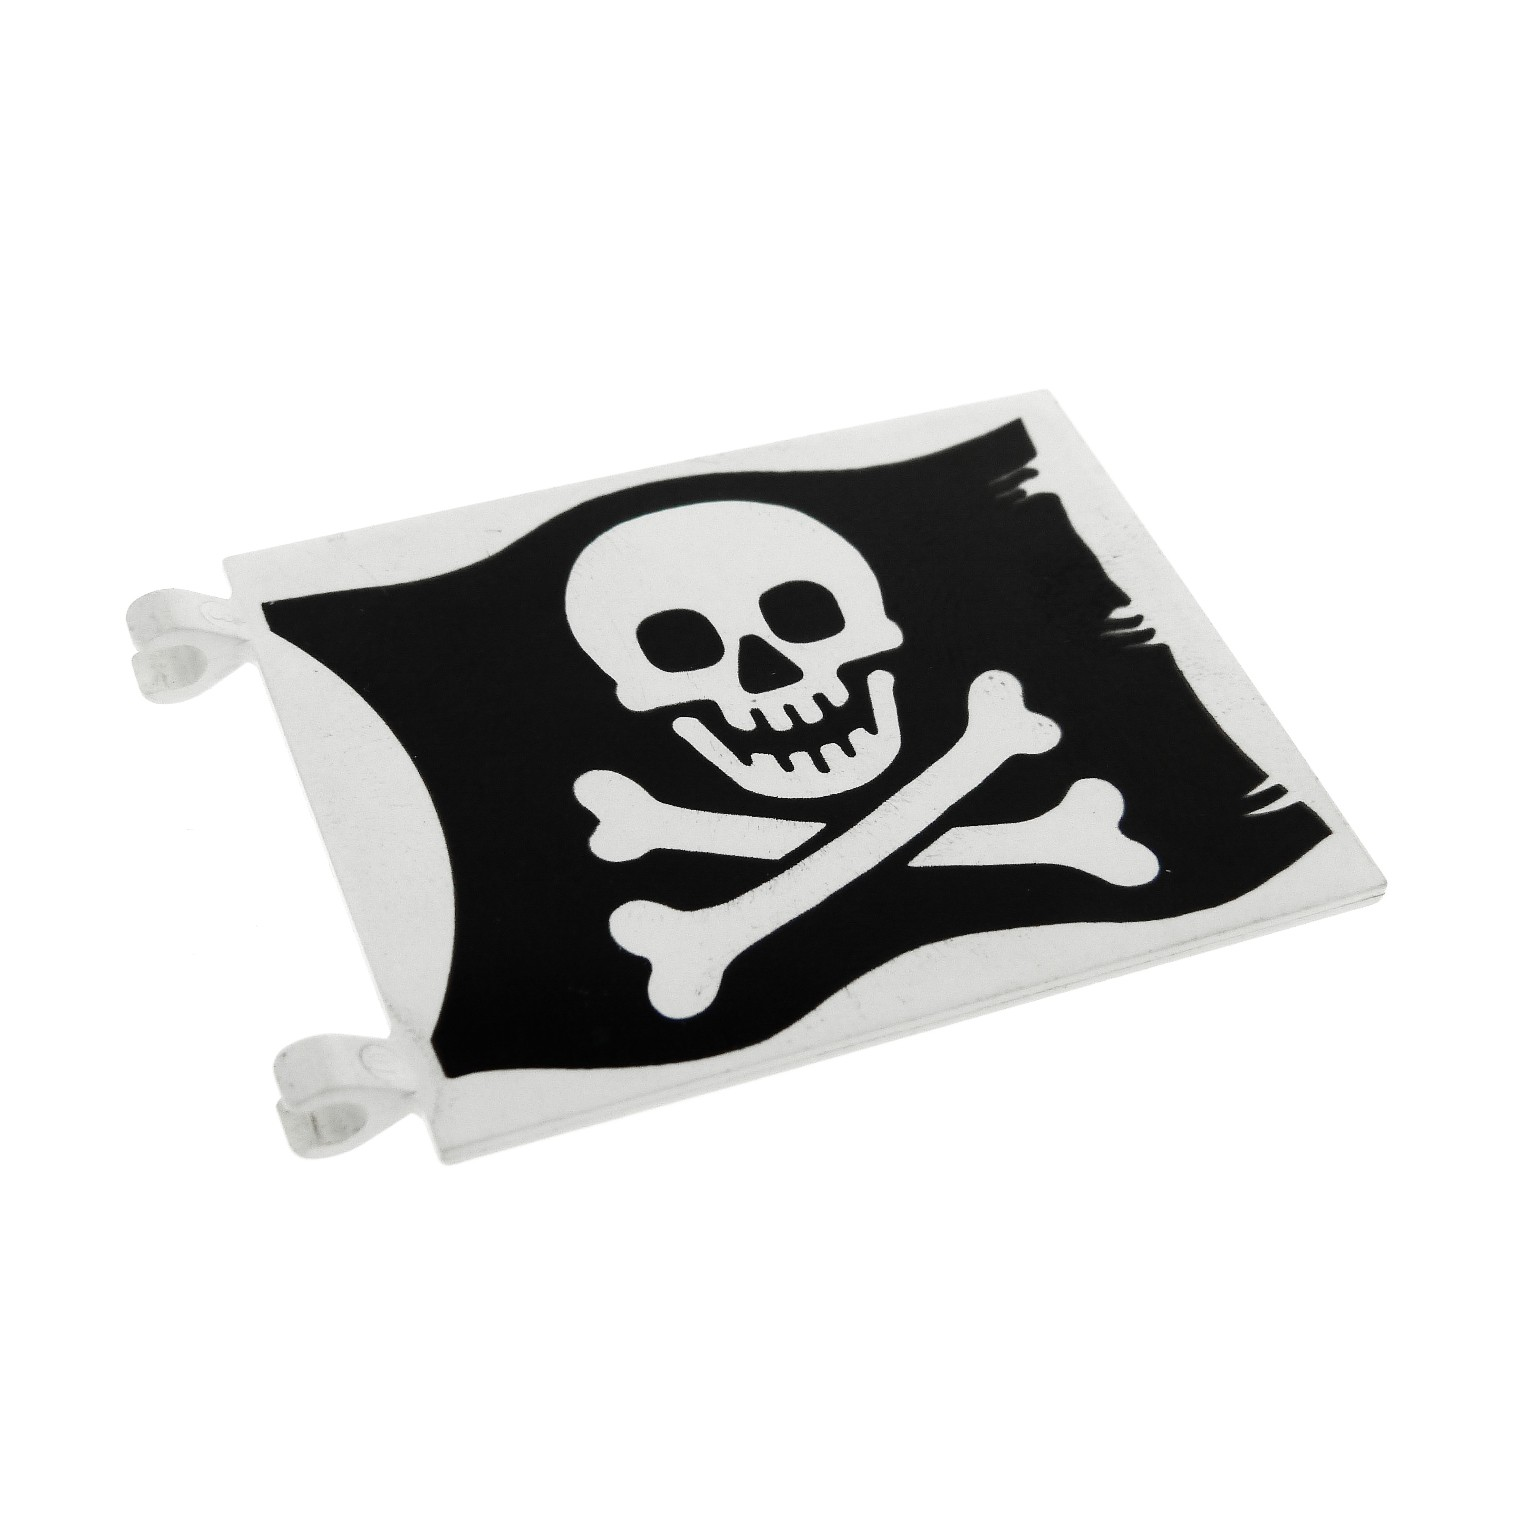 Lego ® Piratenflagge 6x4-2525px1 rot gekreuzte Imperiale Flagge Fahne